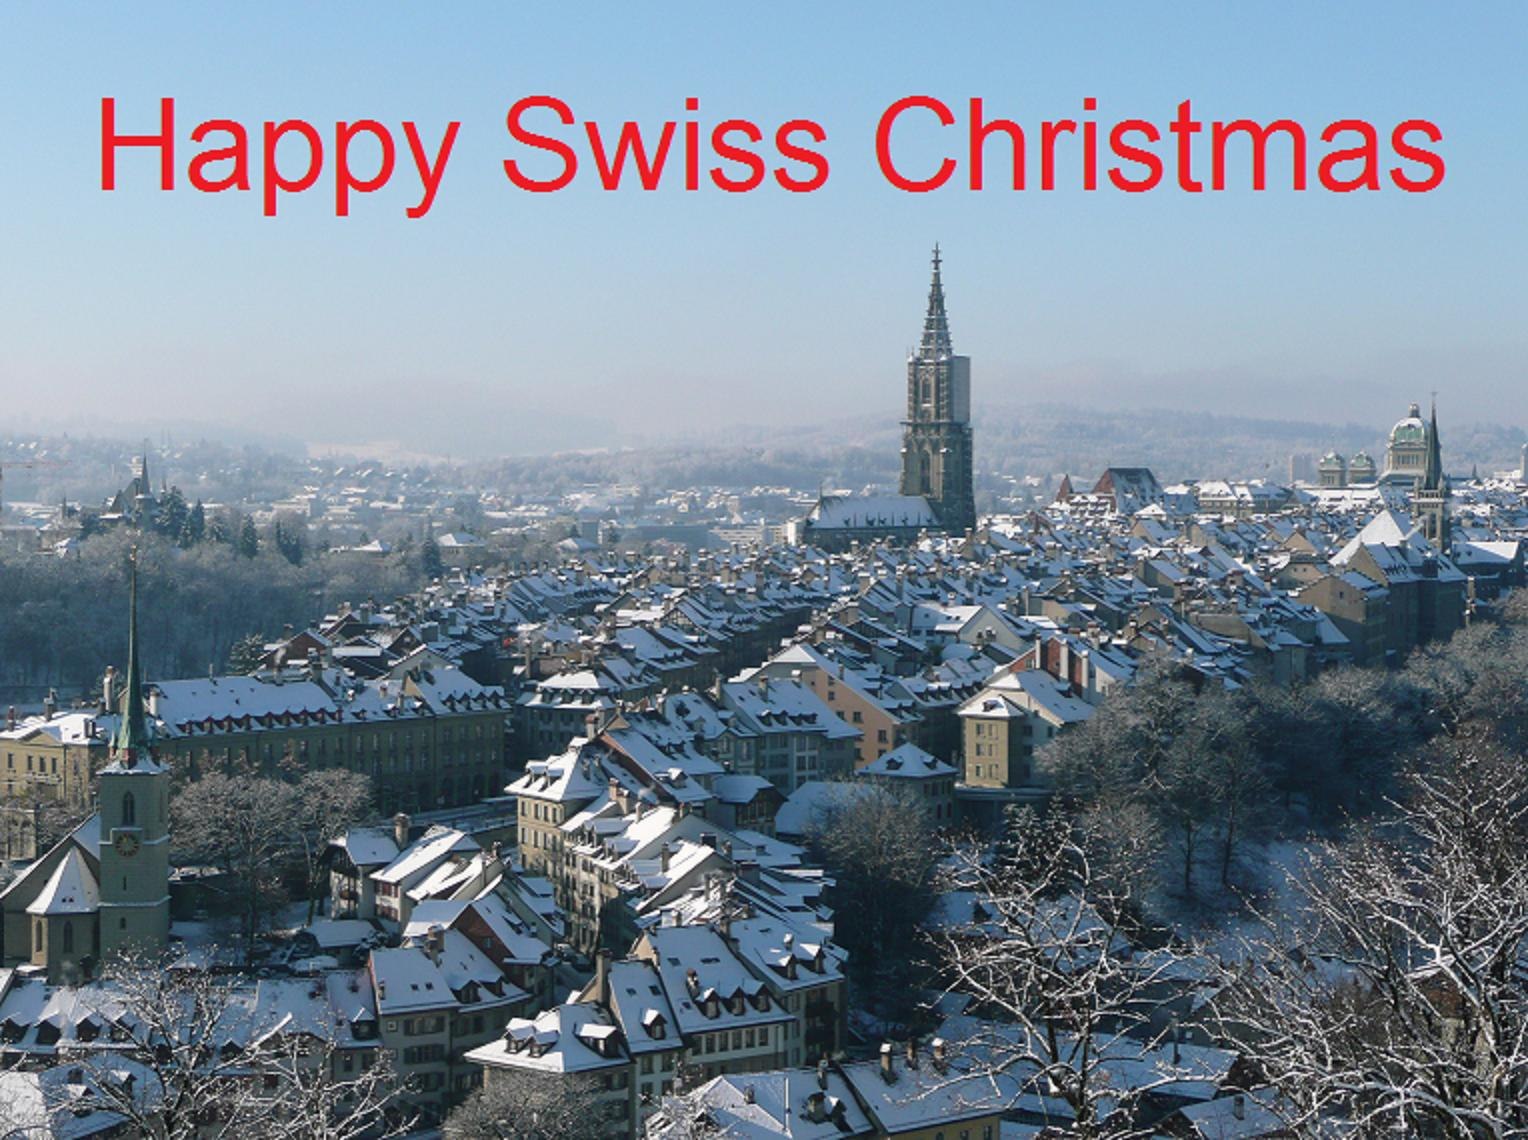 Happy Swiss Christmas